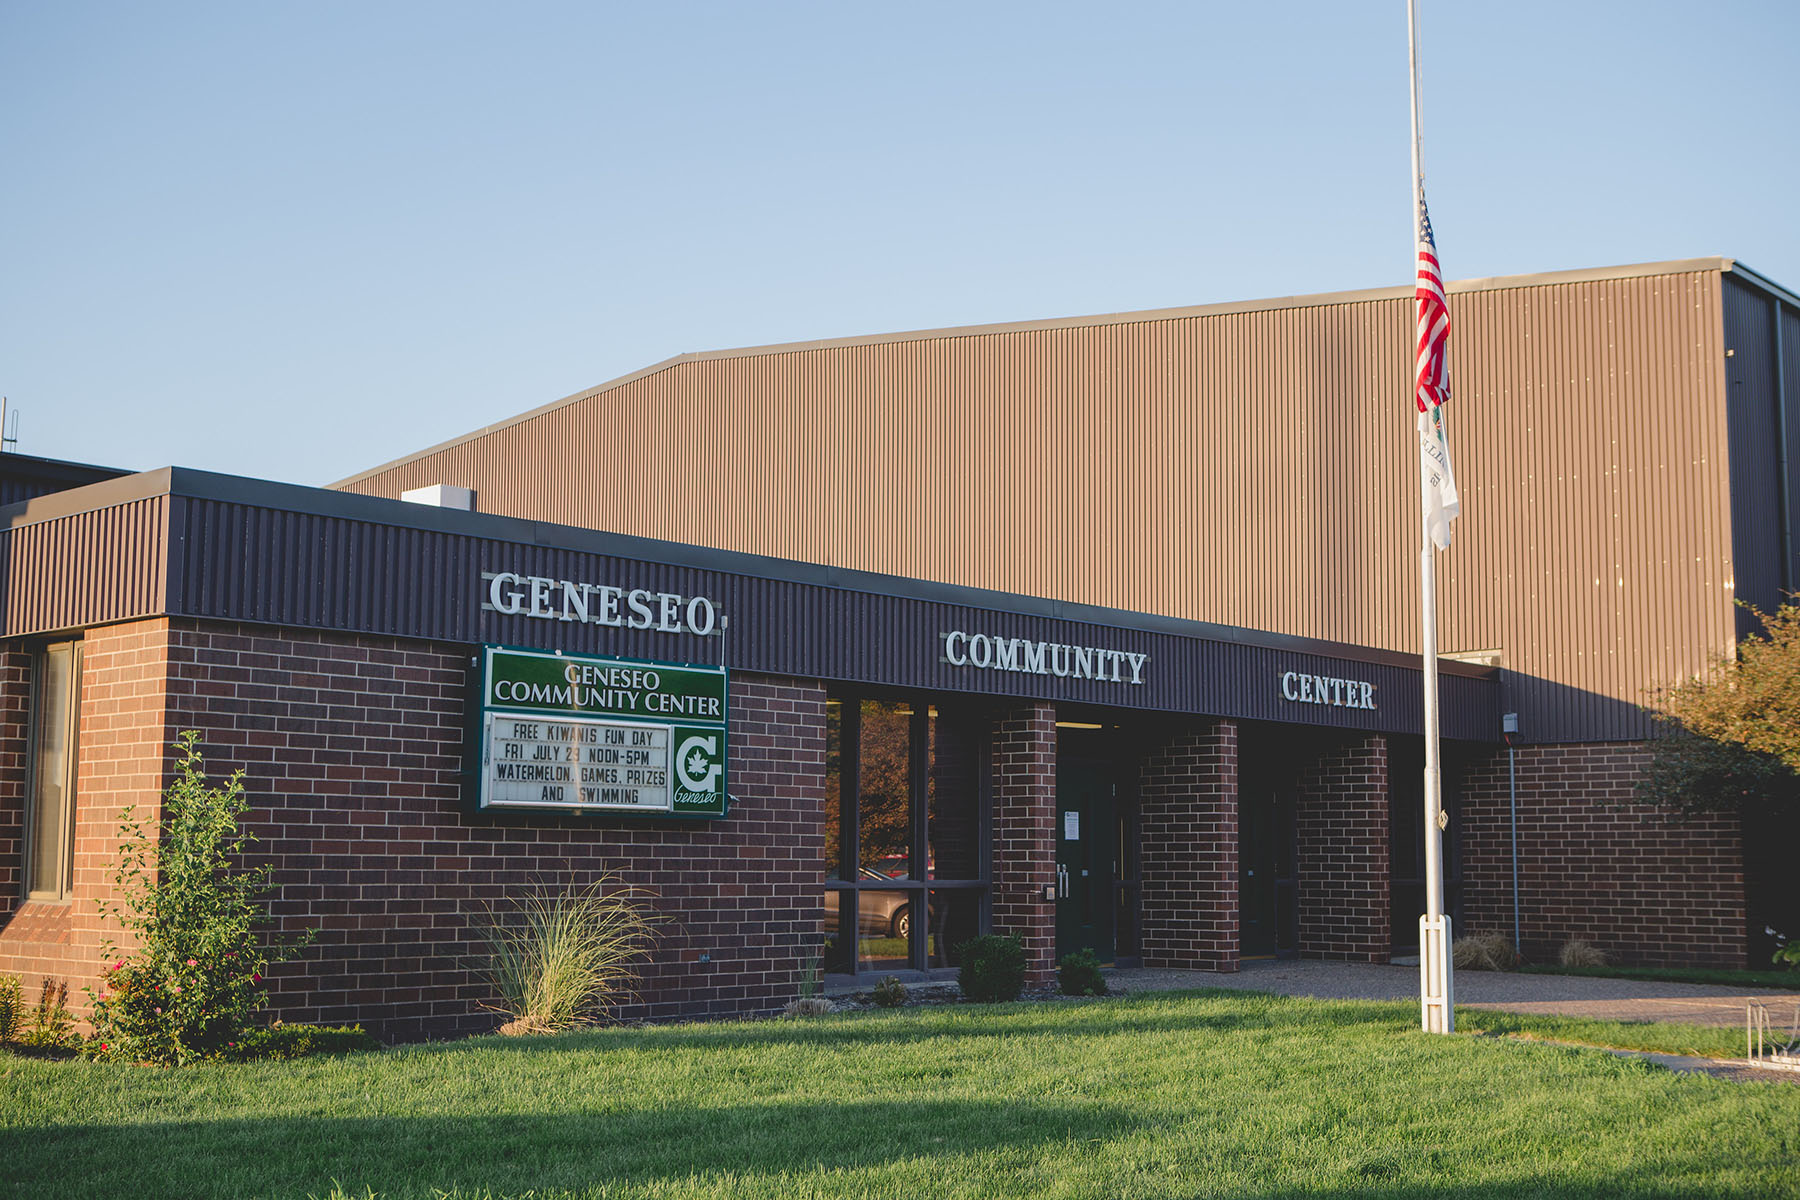 The mission of the Geneseo Park District is to enhance the quality of life in our community by providing a positive recreational experience for all.